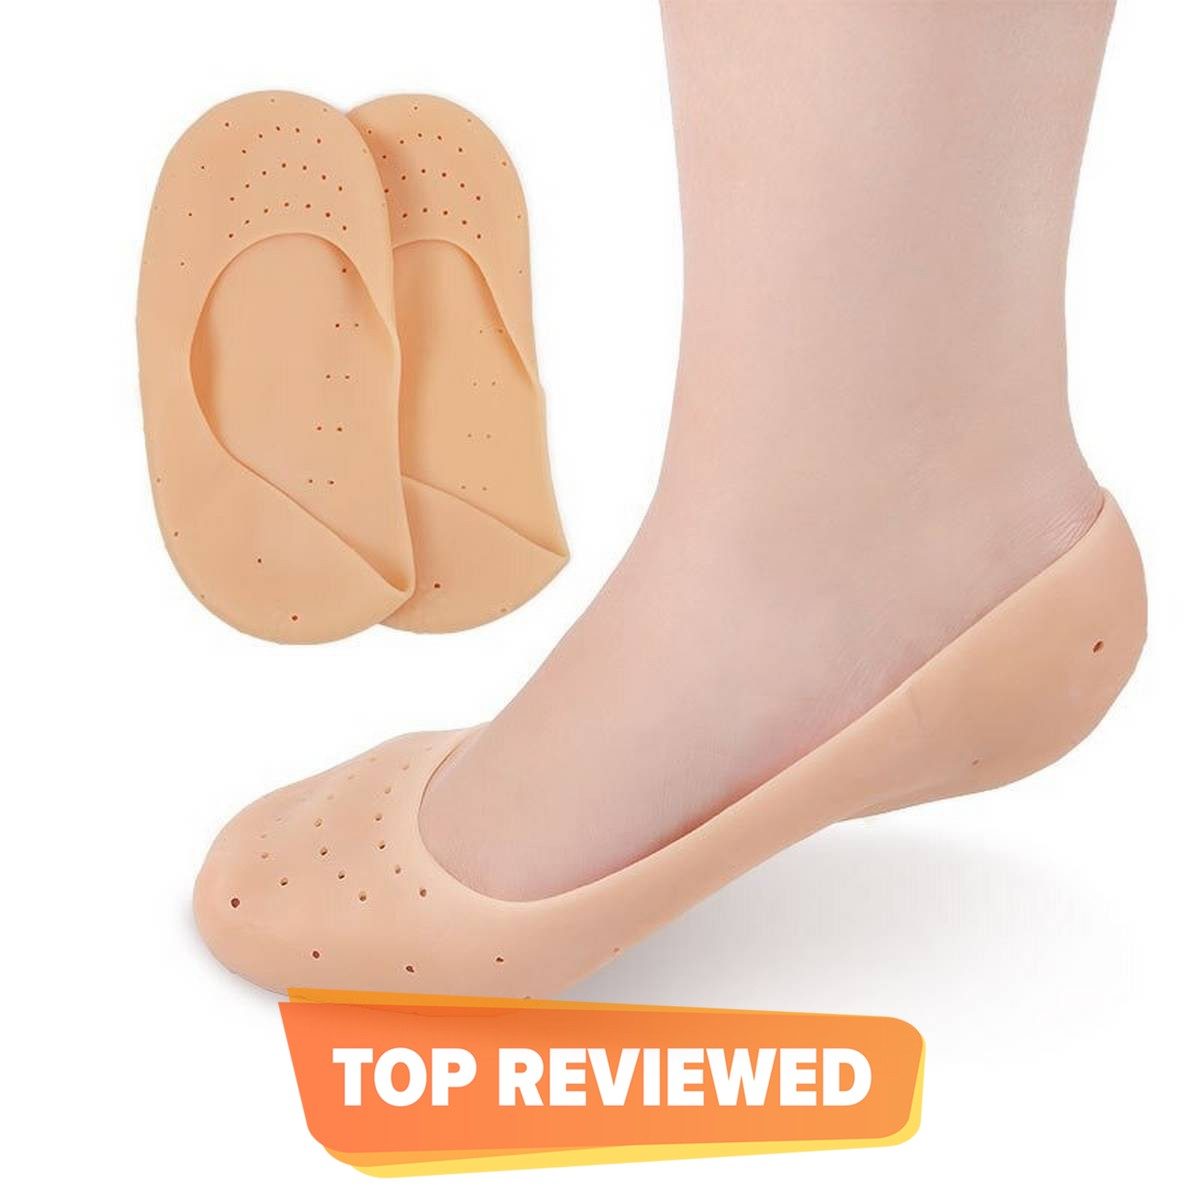 High Quality - Silicone Gel Pad Socks for Pain Relief and anti crack - 1 Pair